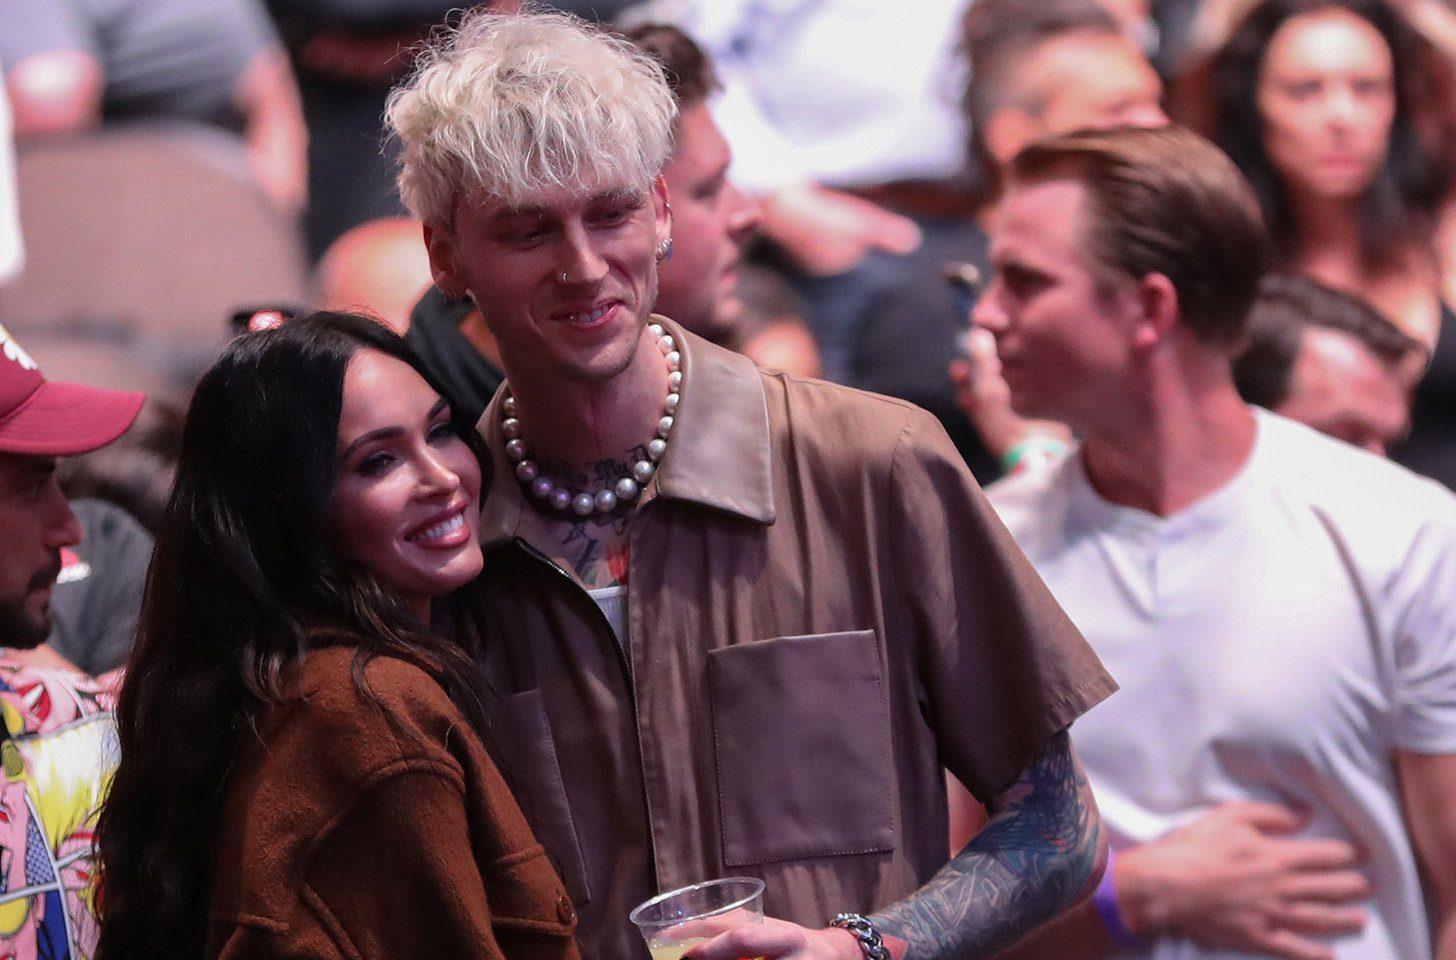 Megan Fox and Machine Gun Kelly: Are the Couple Still Together?